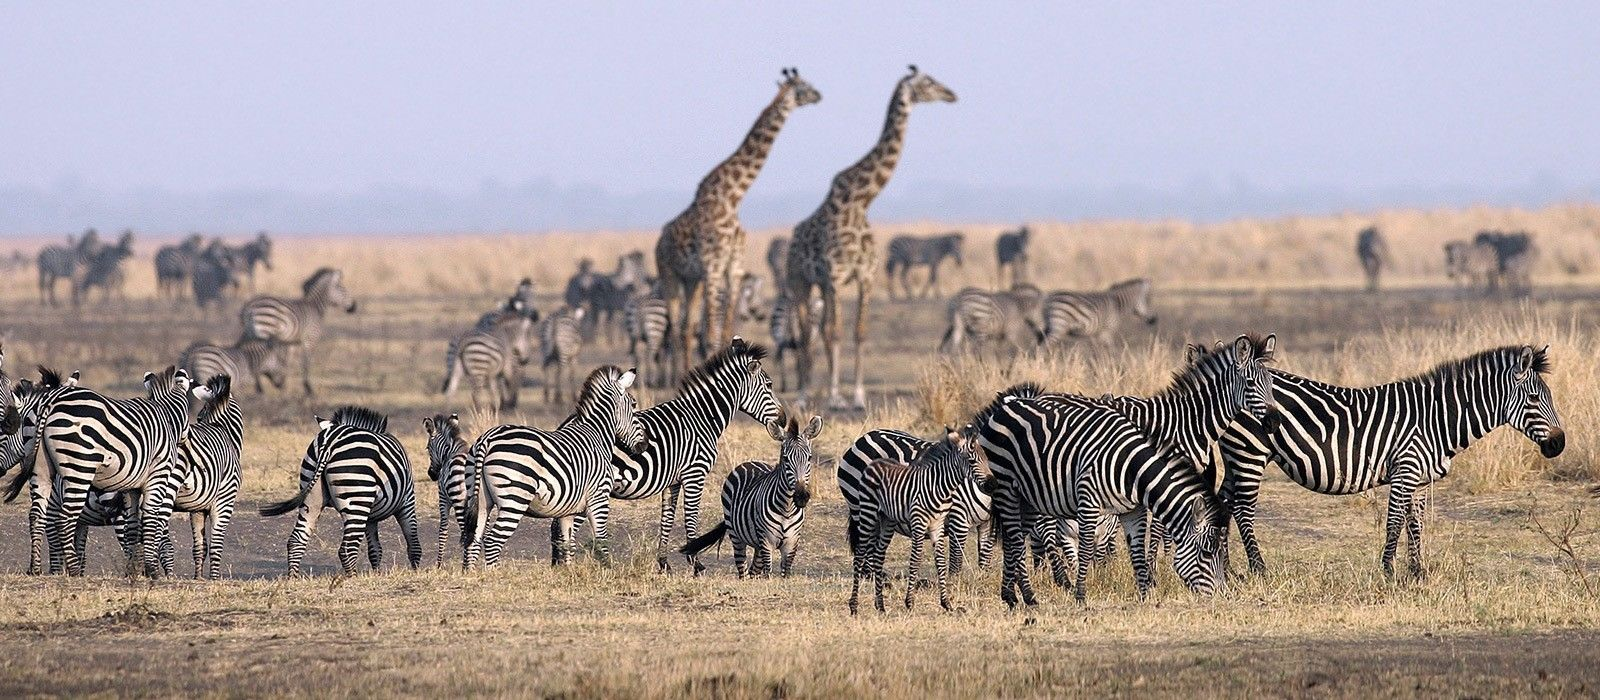 Destination Serengeti (Central) Tanzania